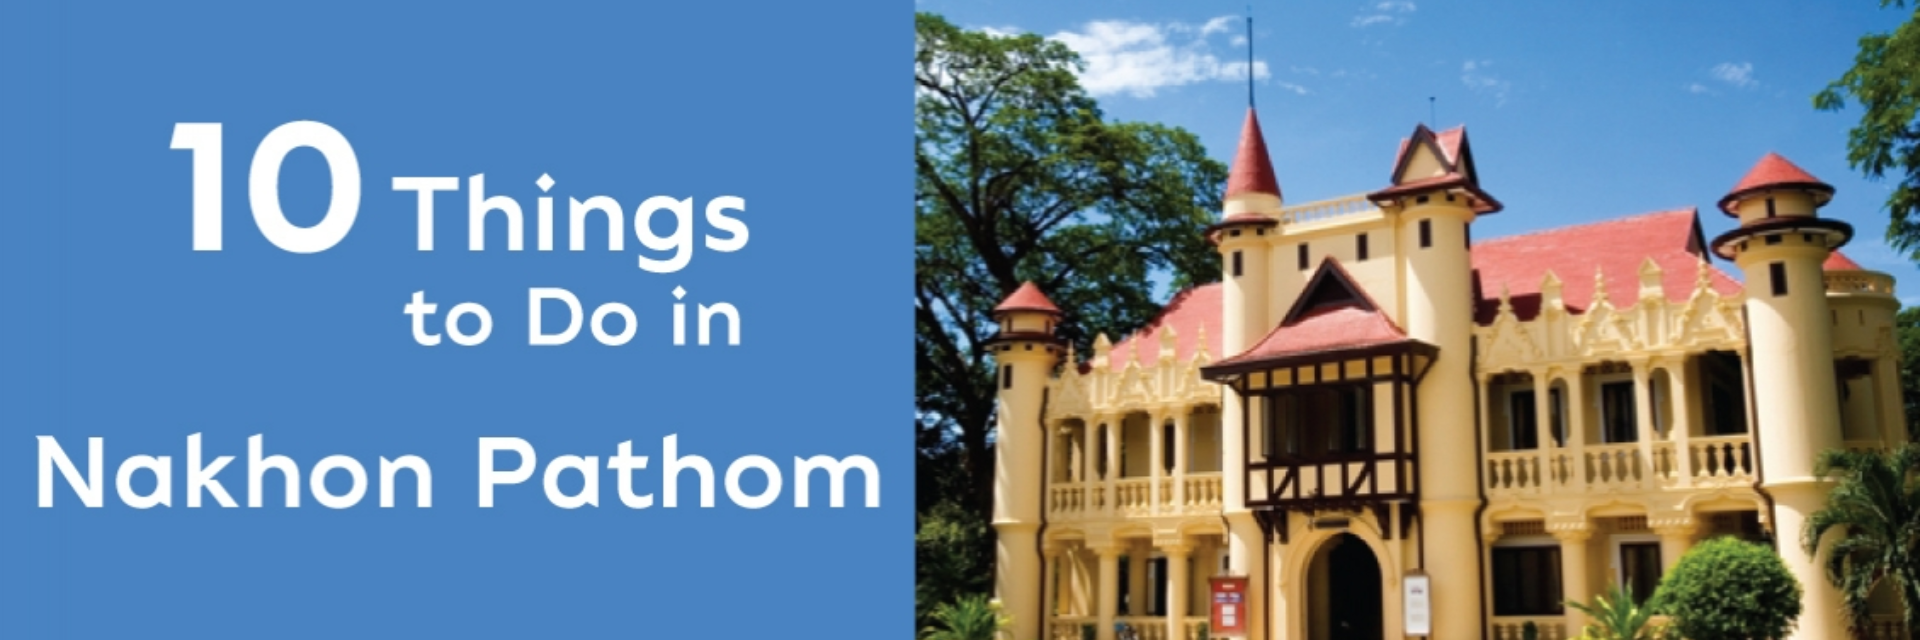 10 THINGS TO DO IN NAKHON PATHOM